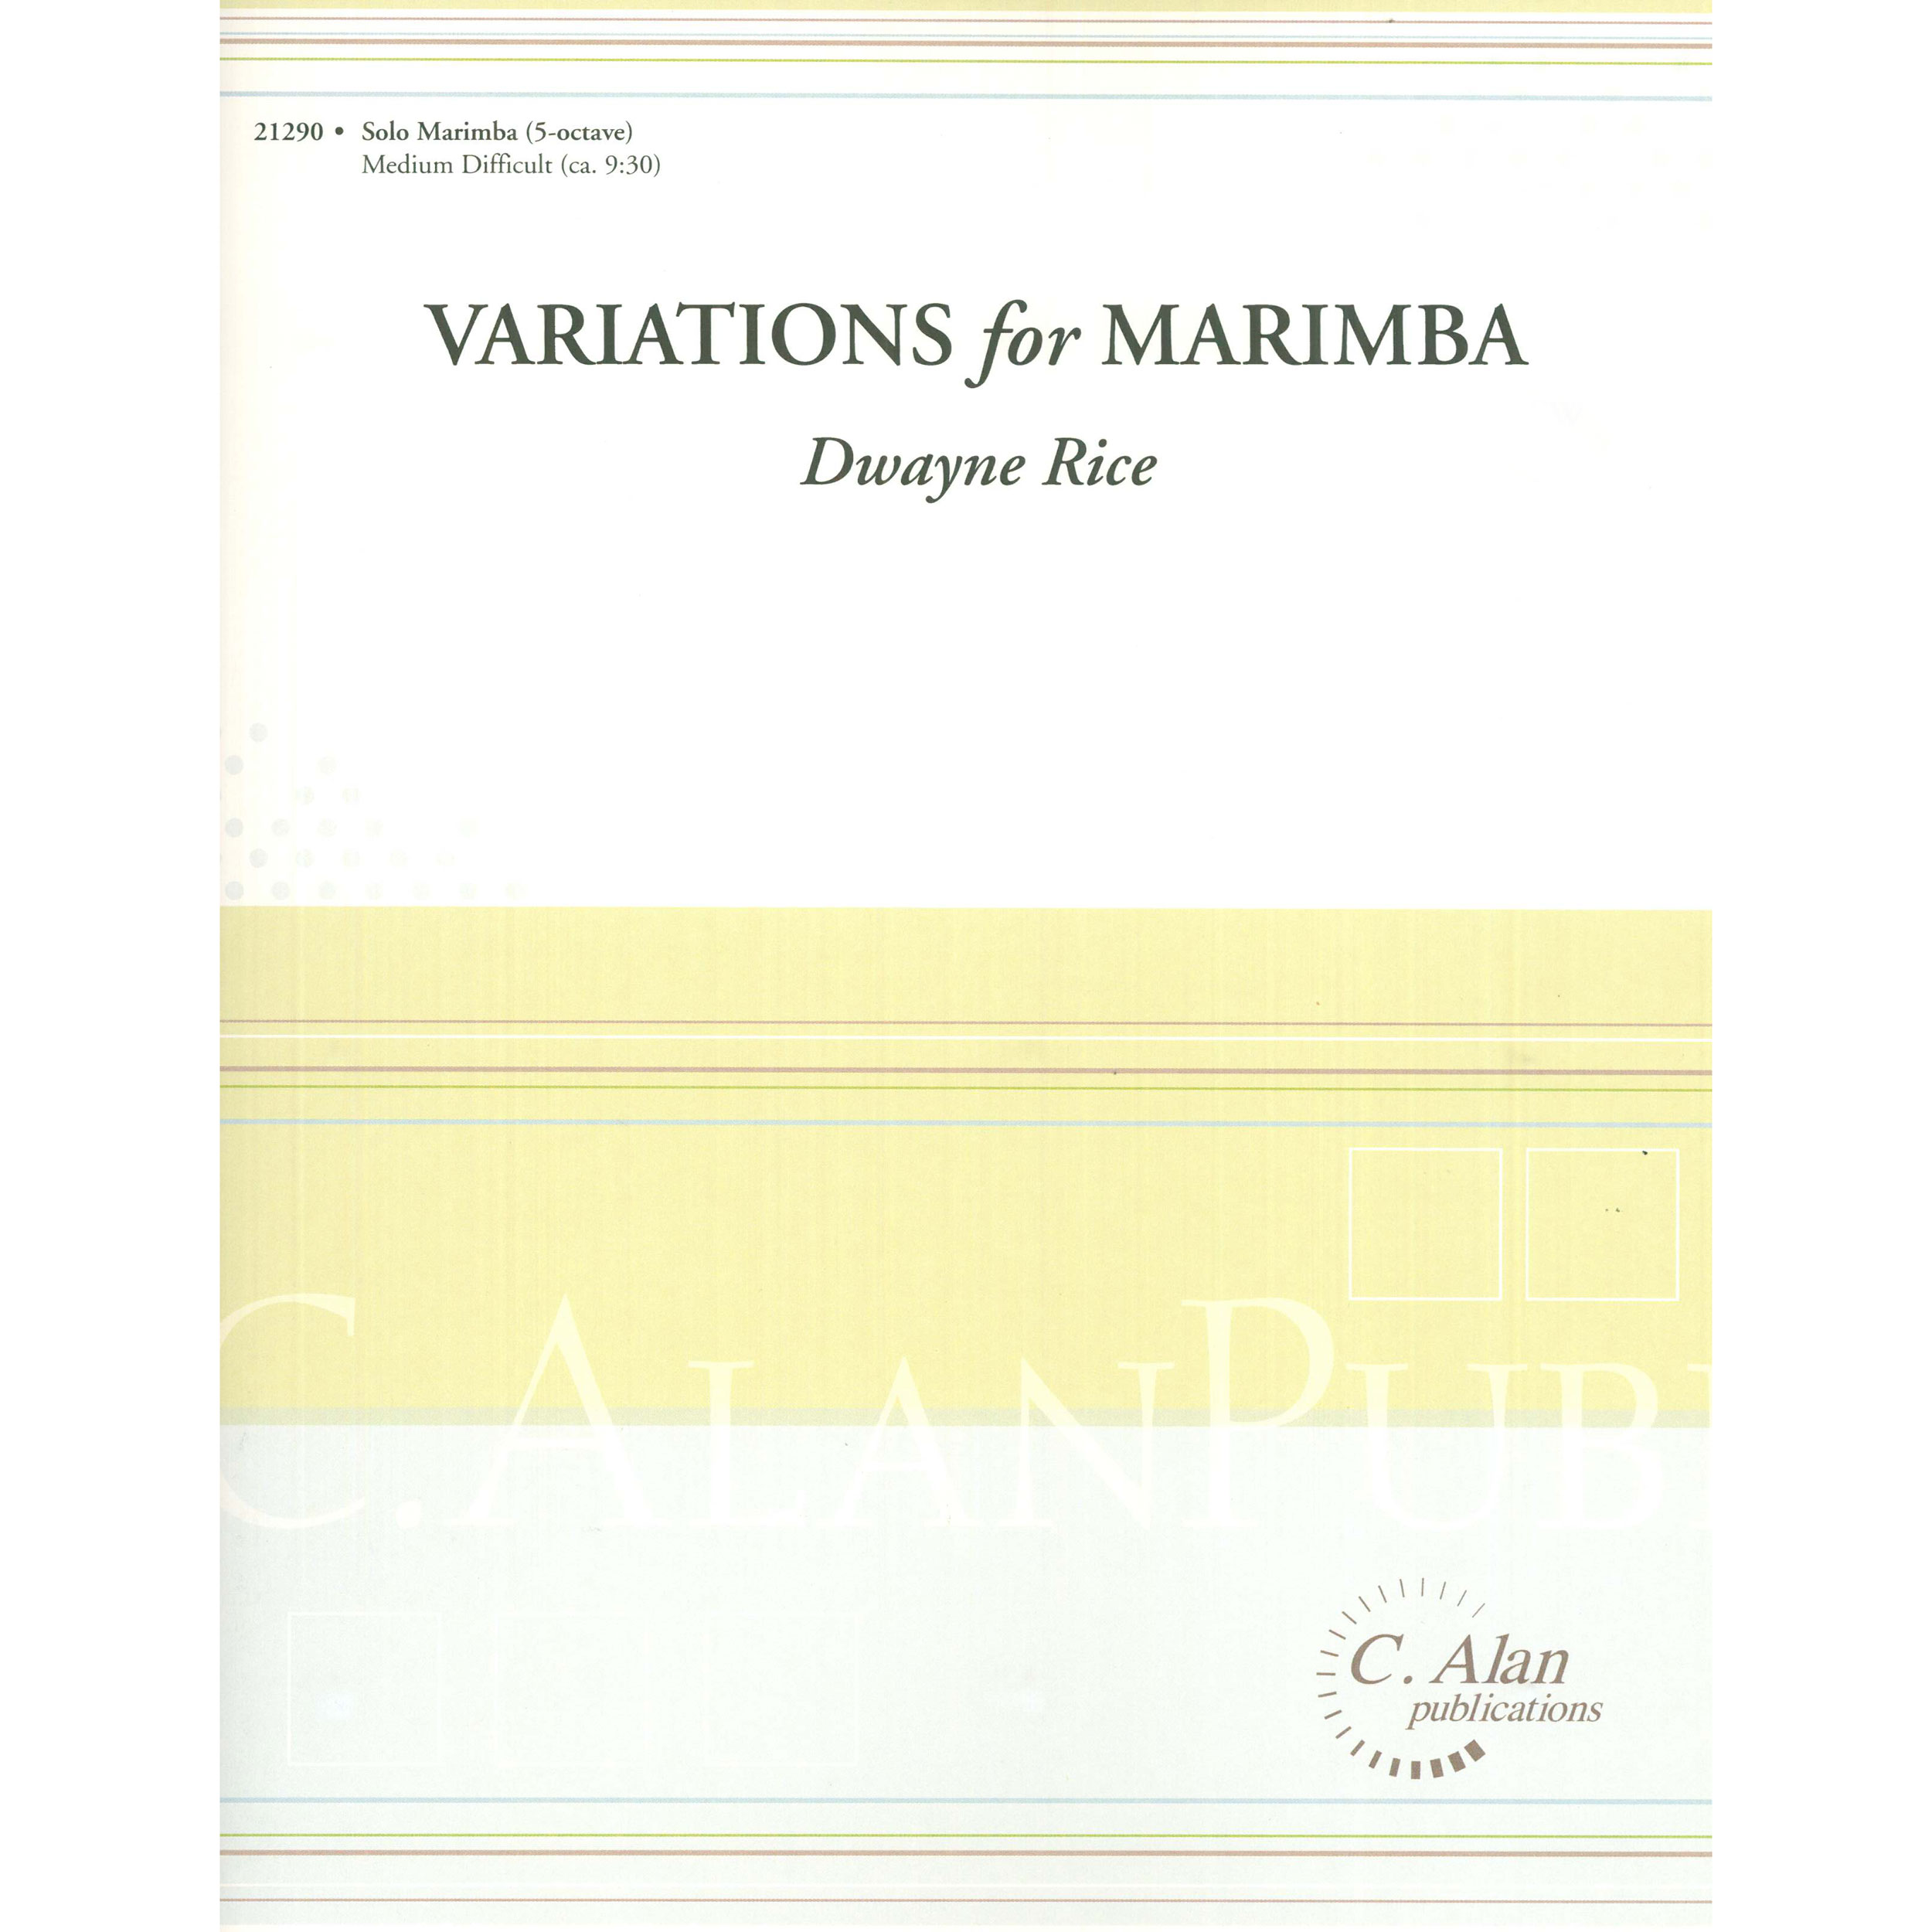 Variations for Marimba by Dwayne Rice